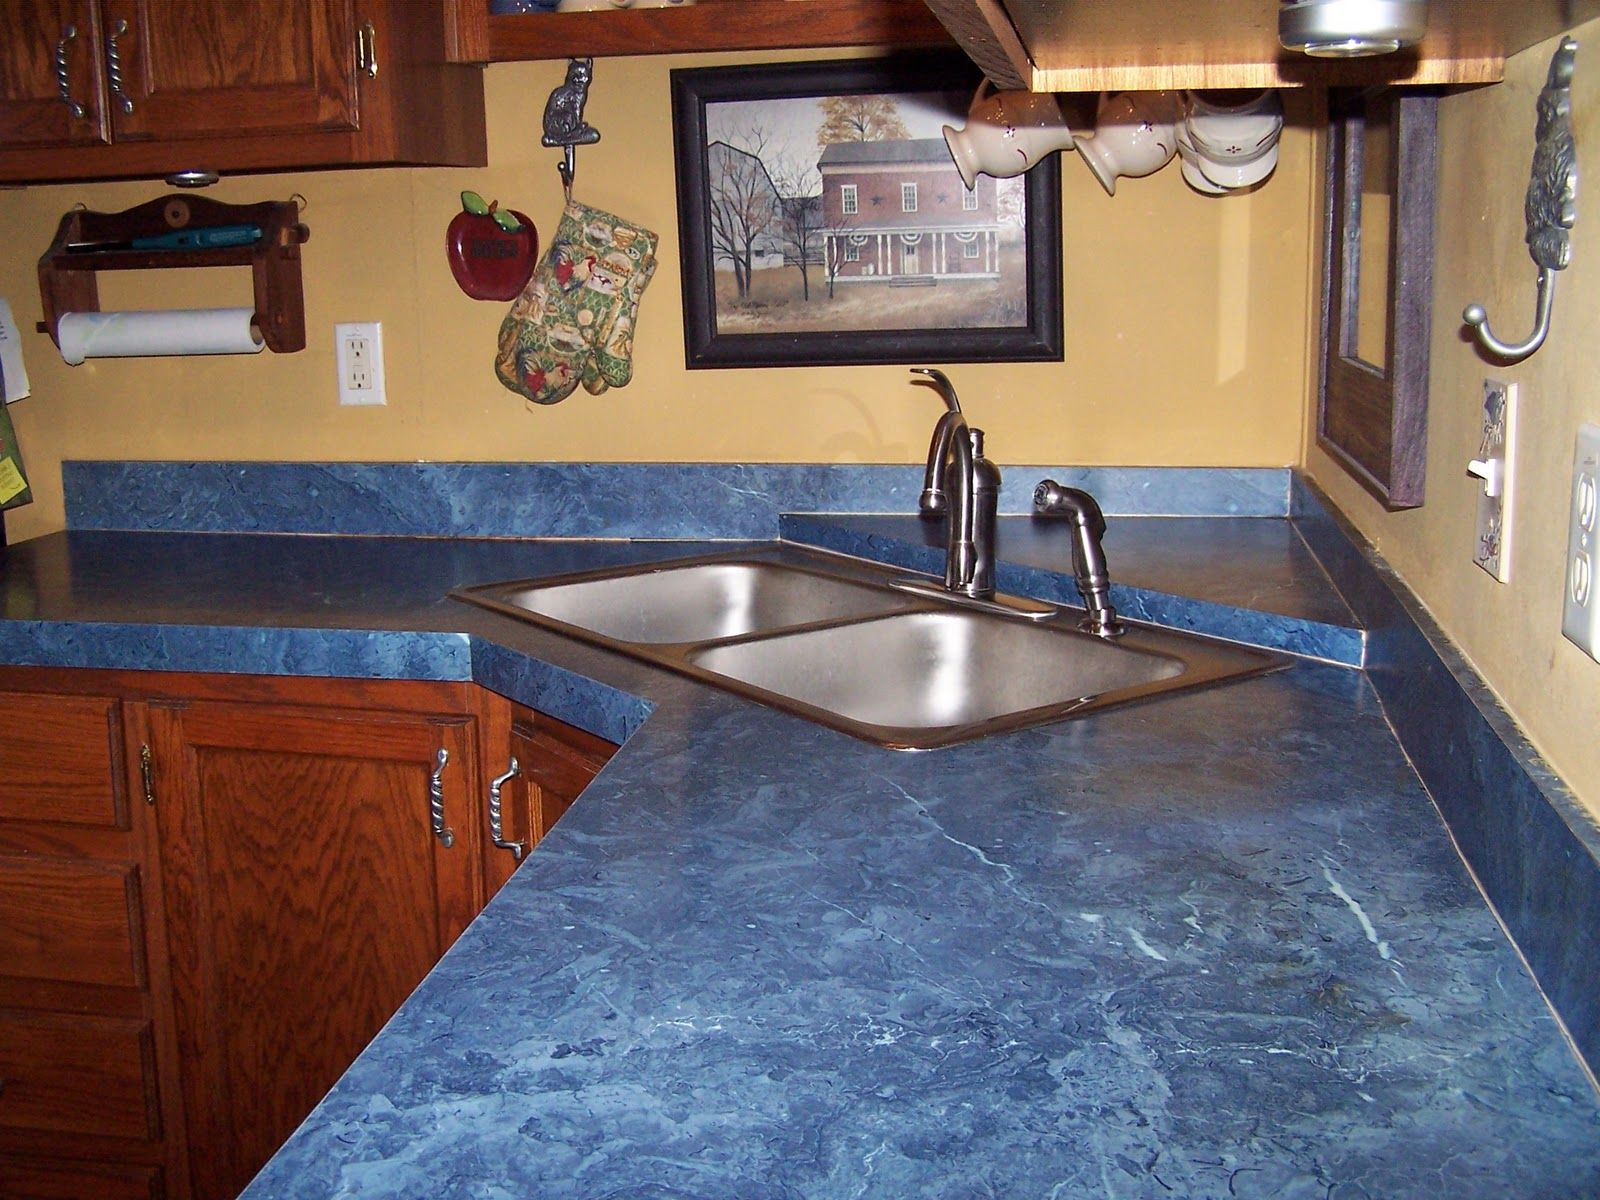 blue kitchen countertops 42 inch cabinets modern interior design with countertop